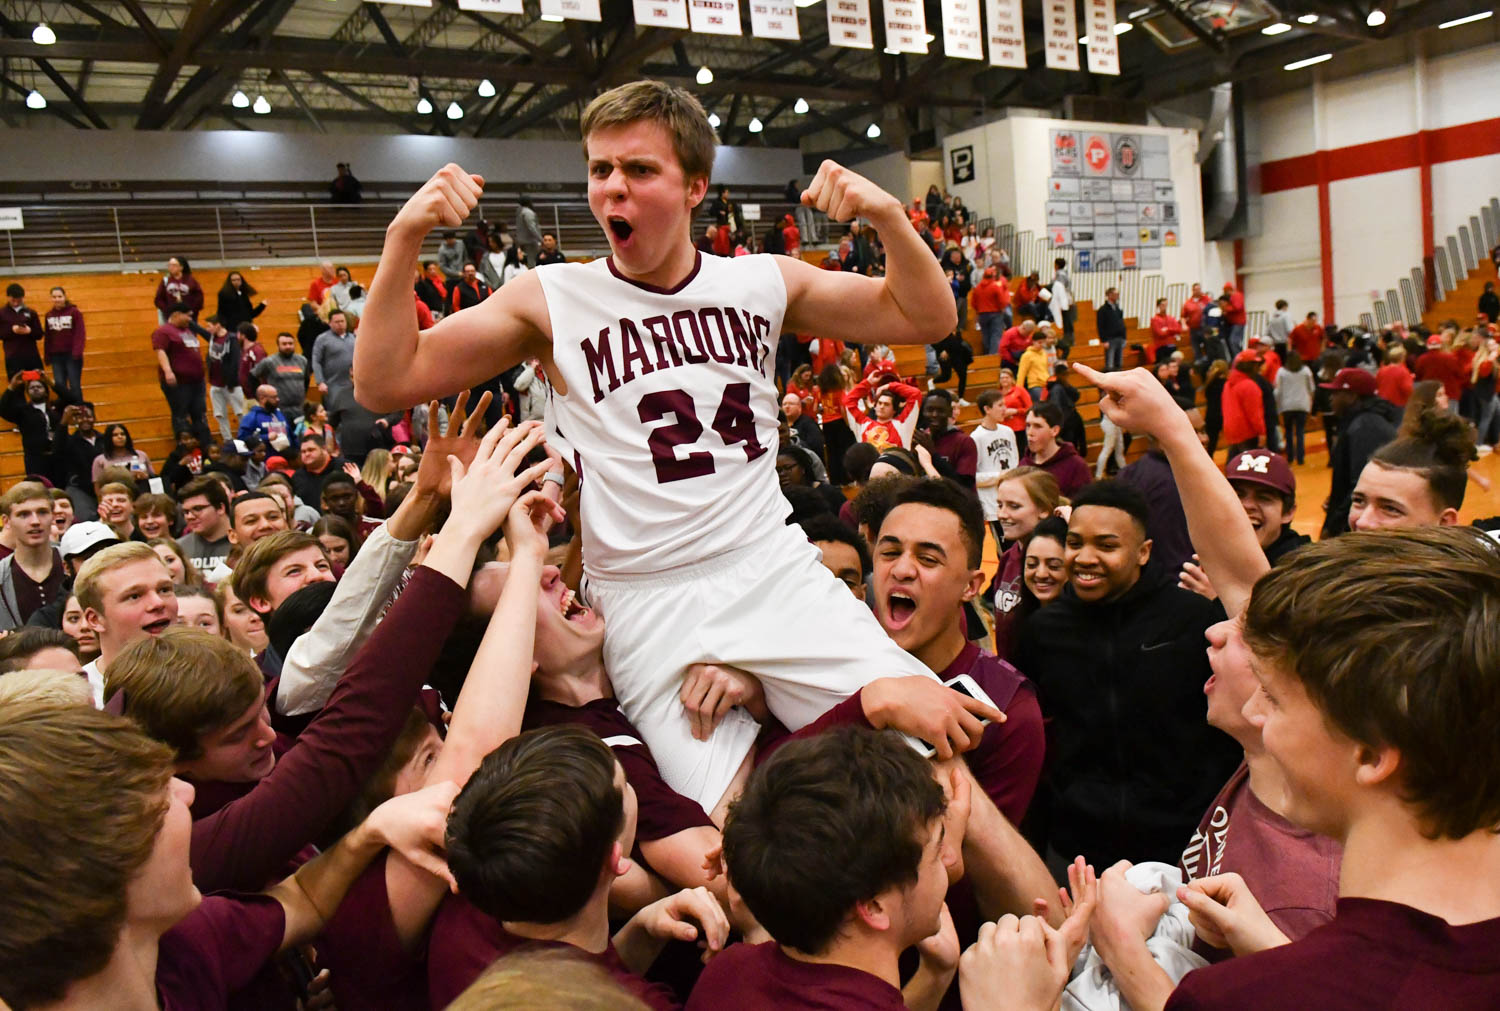 Moline fans lift Ethan Lapaczonek (24) on their shoulders after the Maroons defeated Rock Island, 55-43, in the Class 4A Pekin Sectional Tuesday, March 6, 2018, at Dawdy Hawkins Gym. (Todd Mizener - Dispatch/Argus)